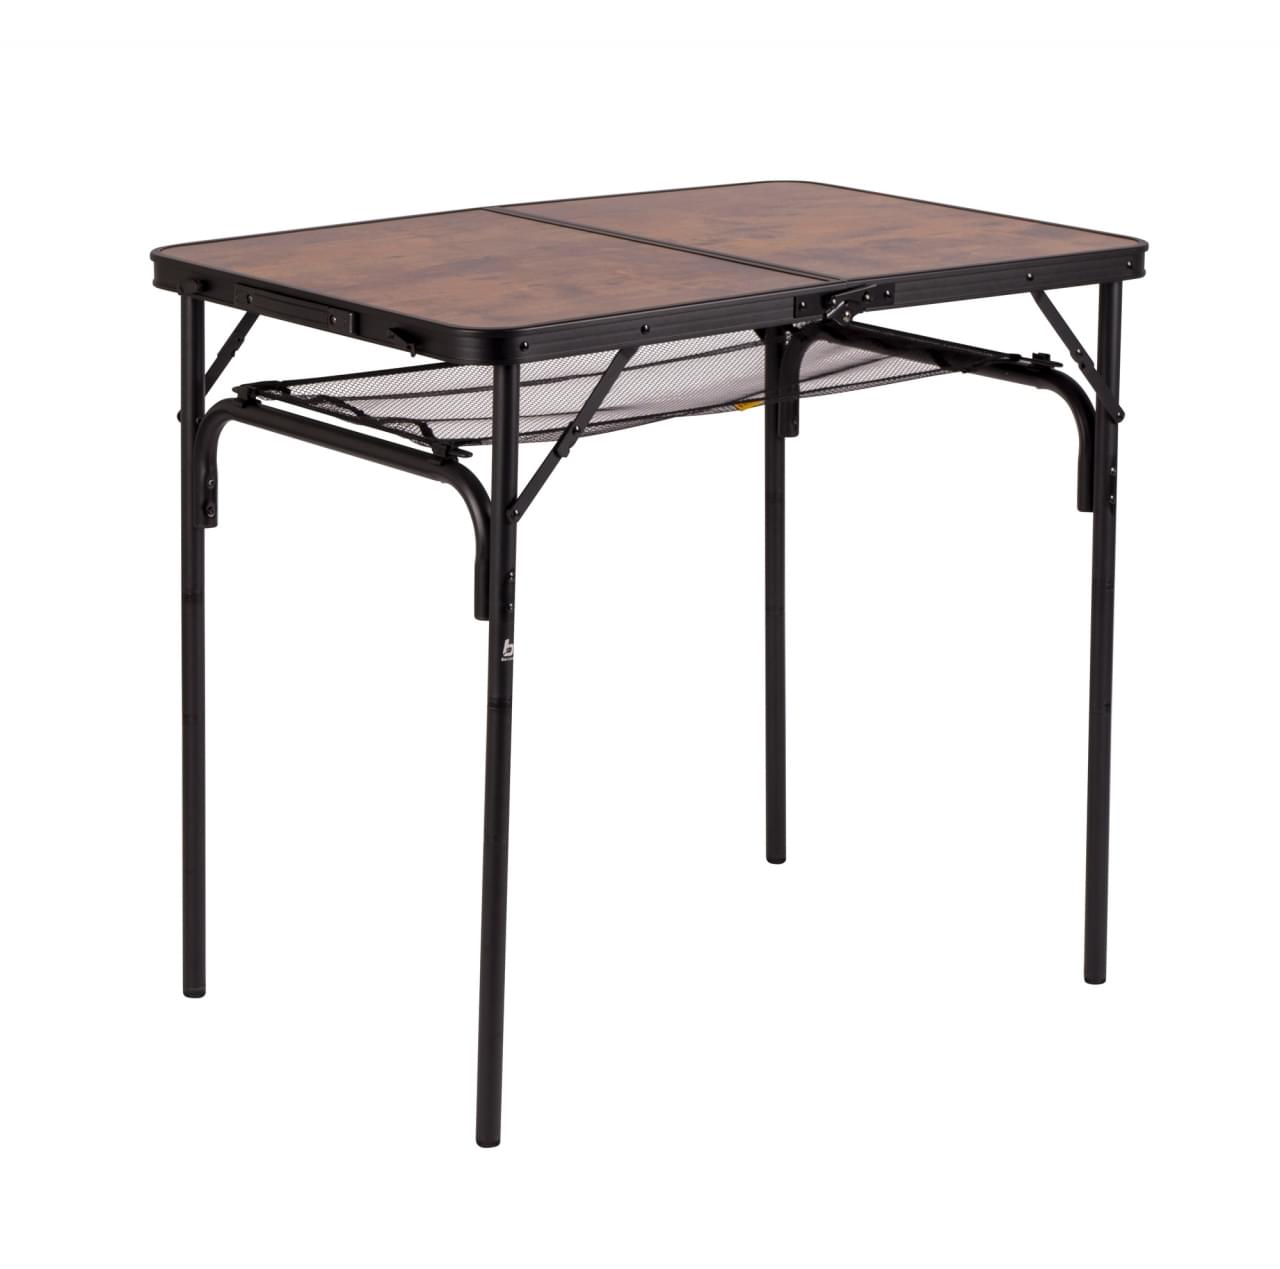 Bo-Camp Decatur Industrial 90 x 60 cm Campingtafel